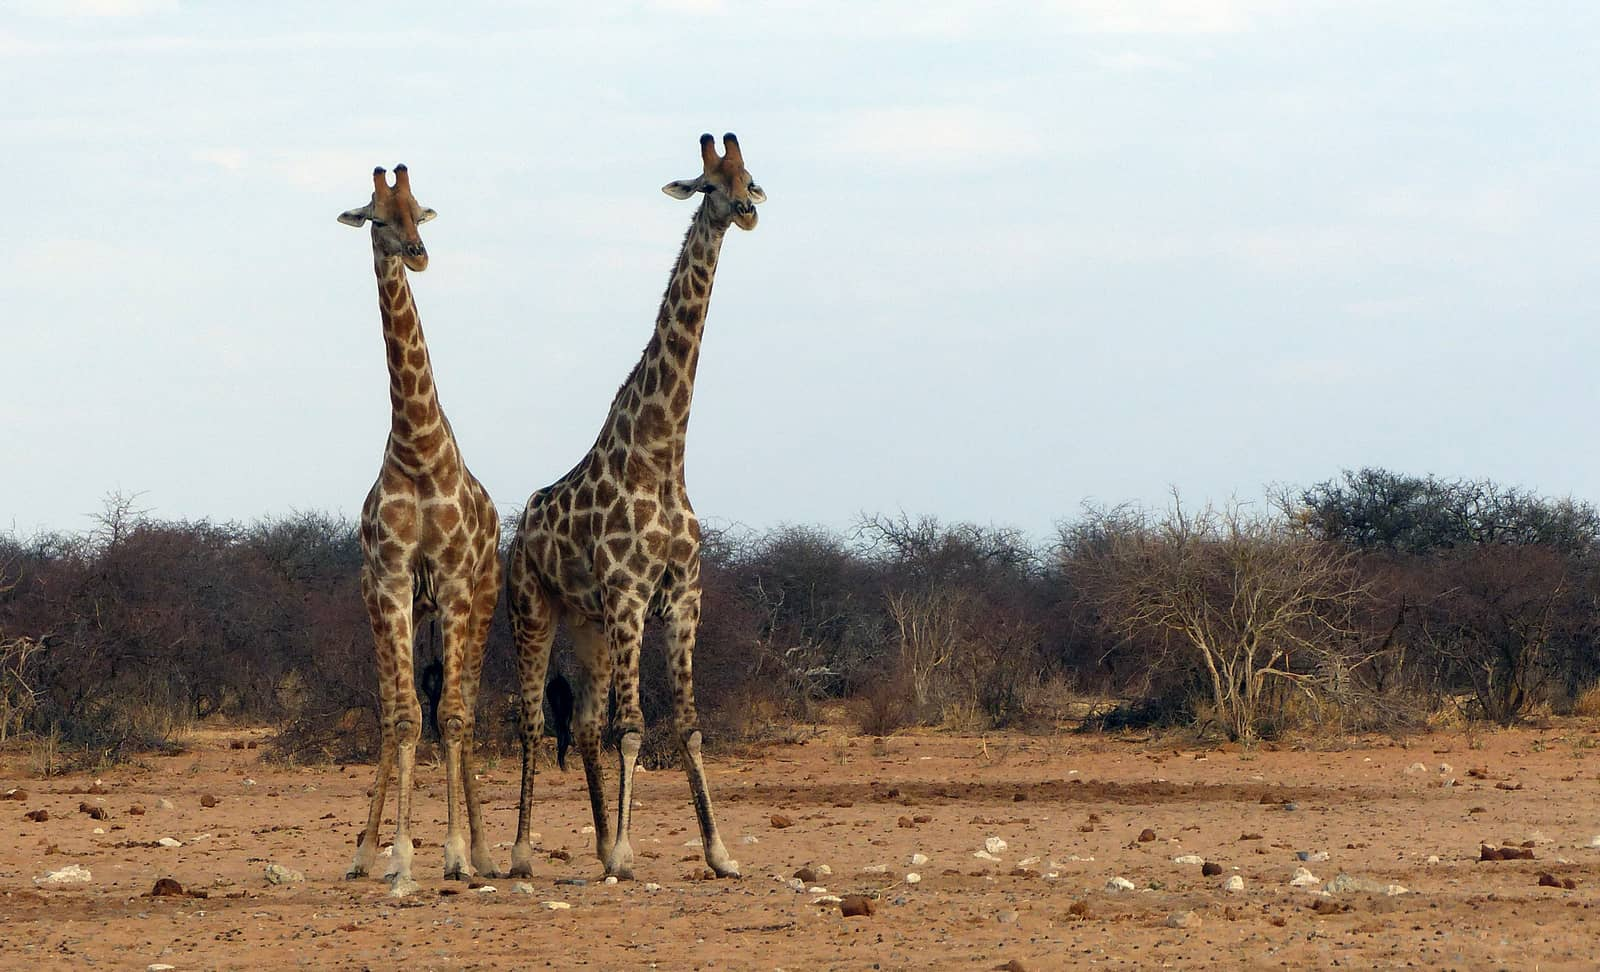 Giraffes at Tsumcor Waterhole, Namibia